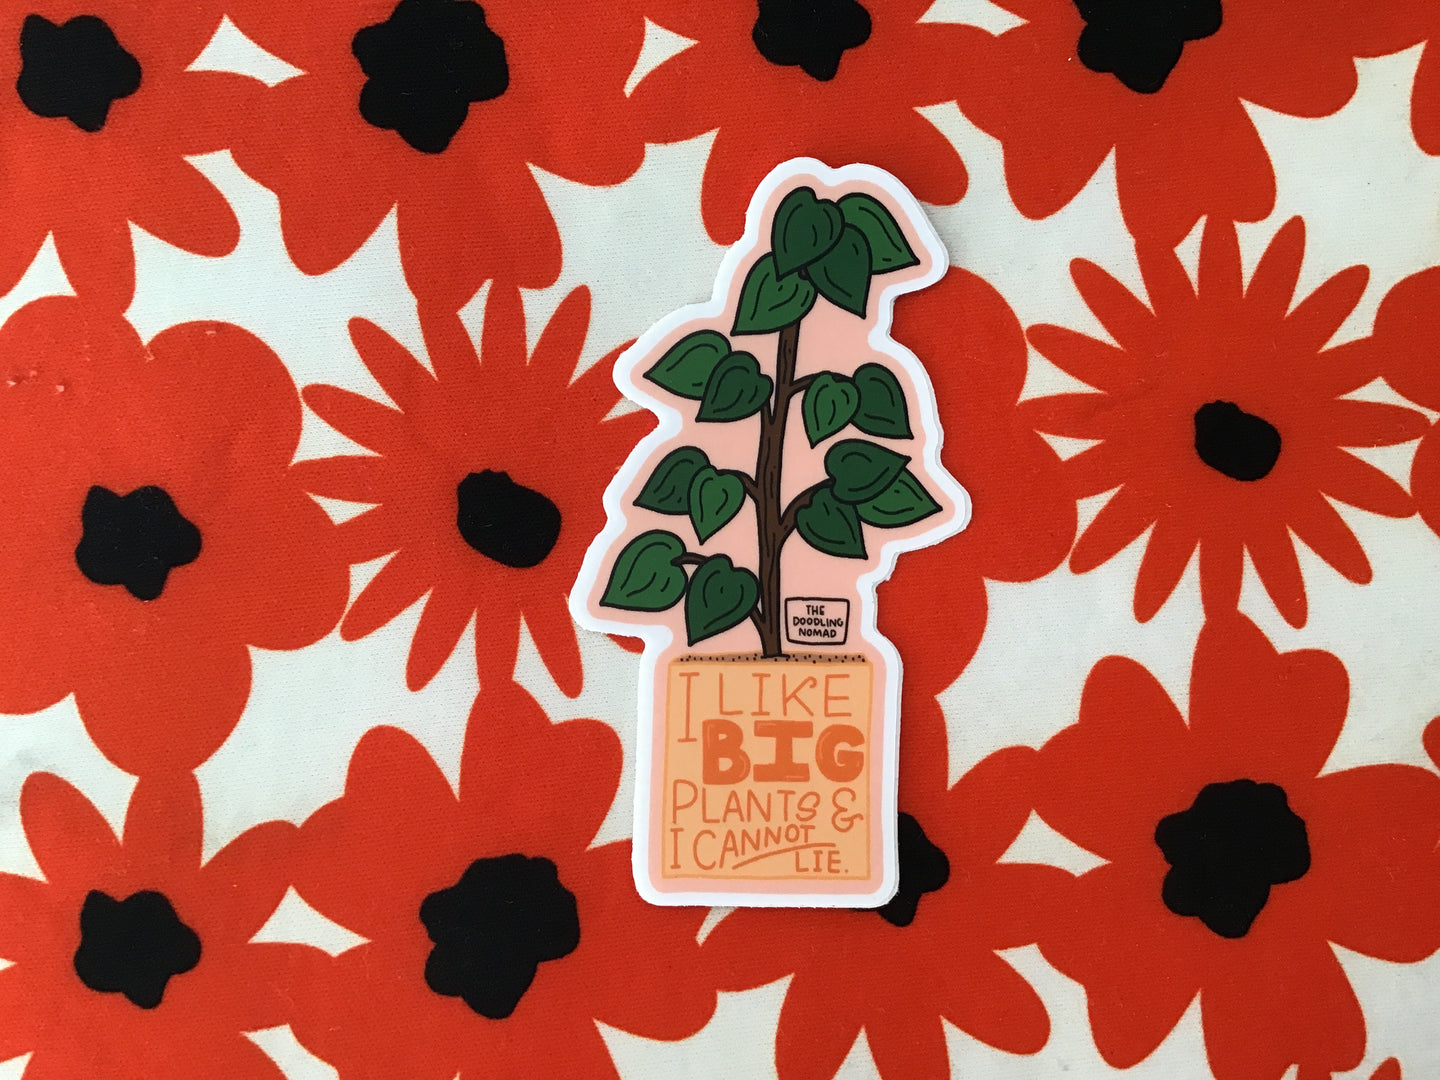 I Like Big Plants Sticker